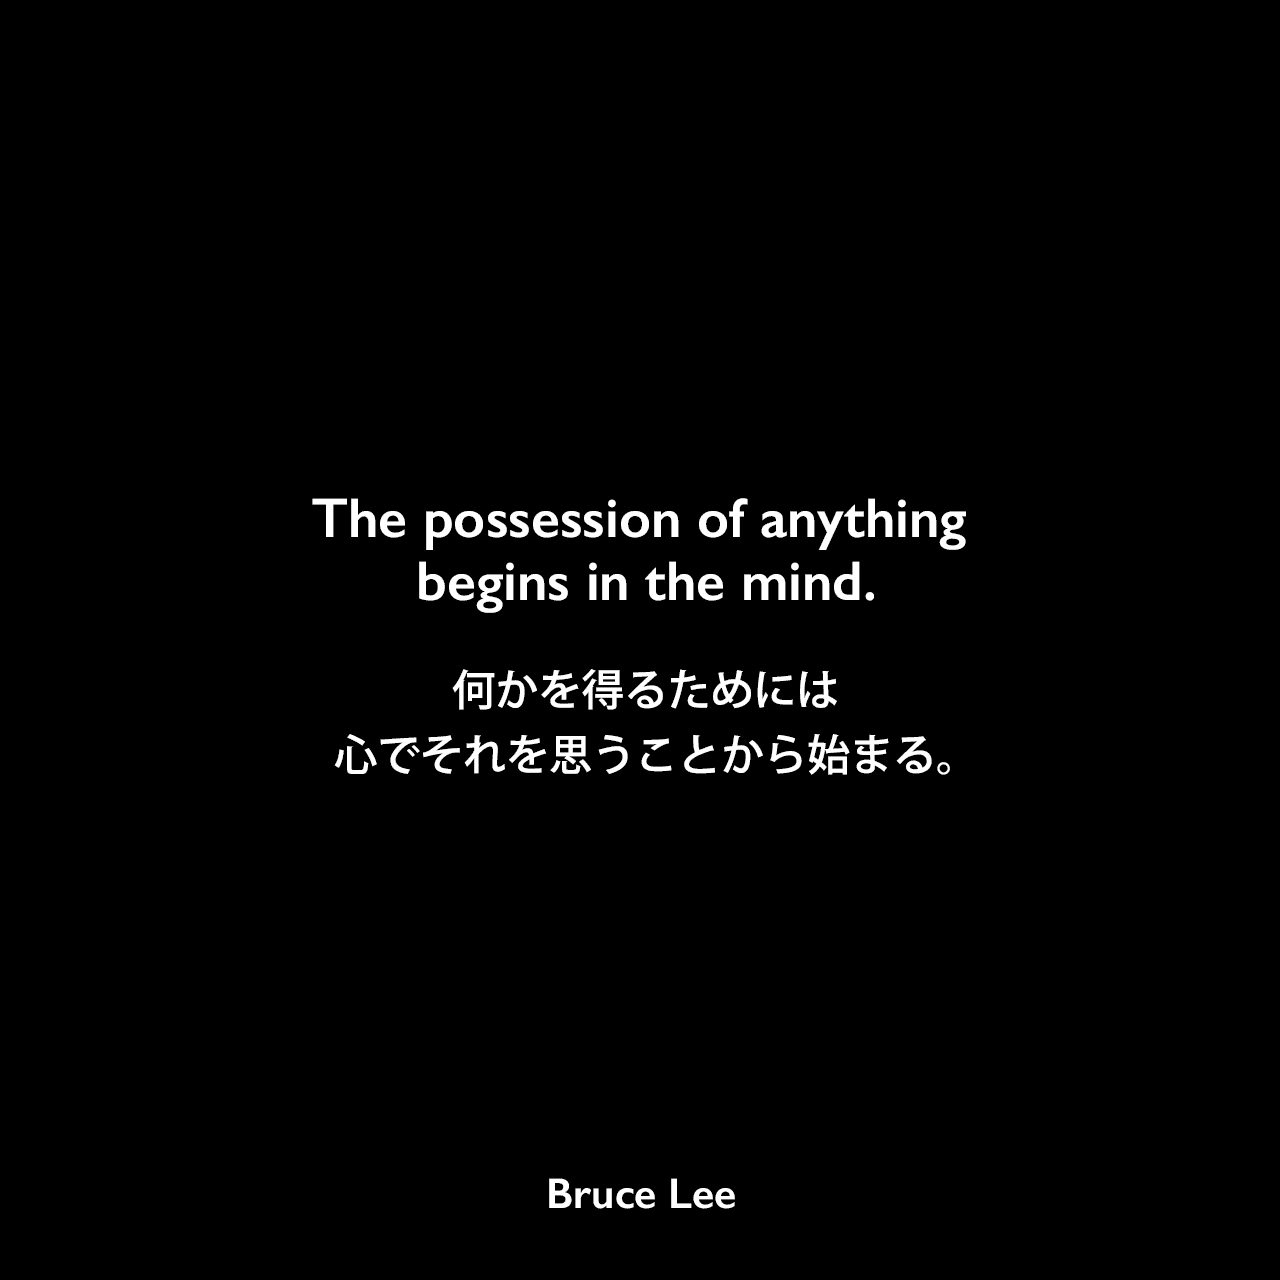 The possession of anything begins in the mind.何かを得るためには、心でそれを思うことから始まる。